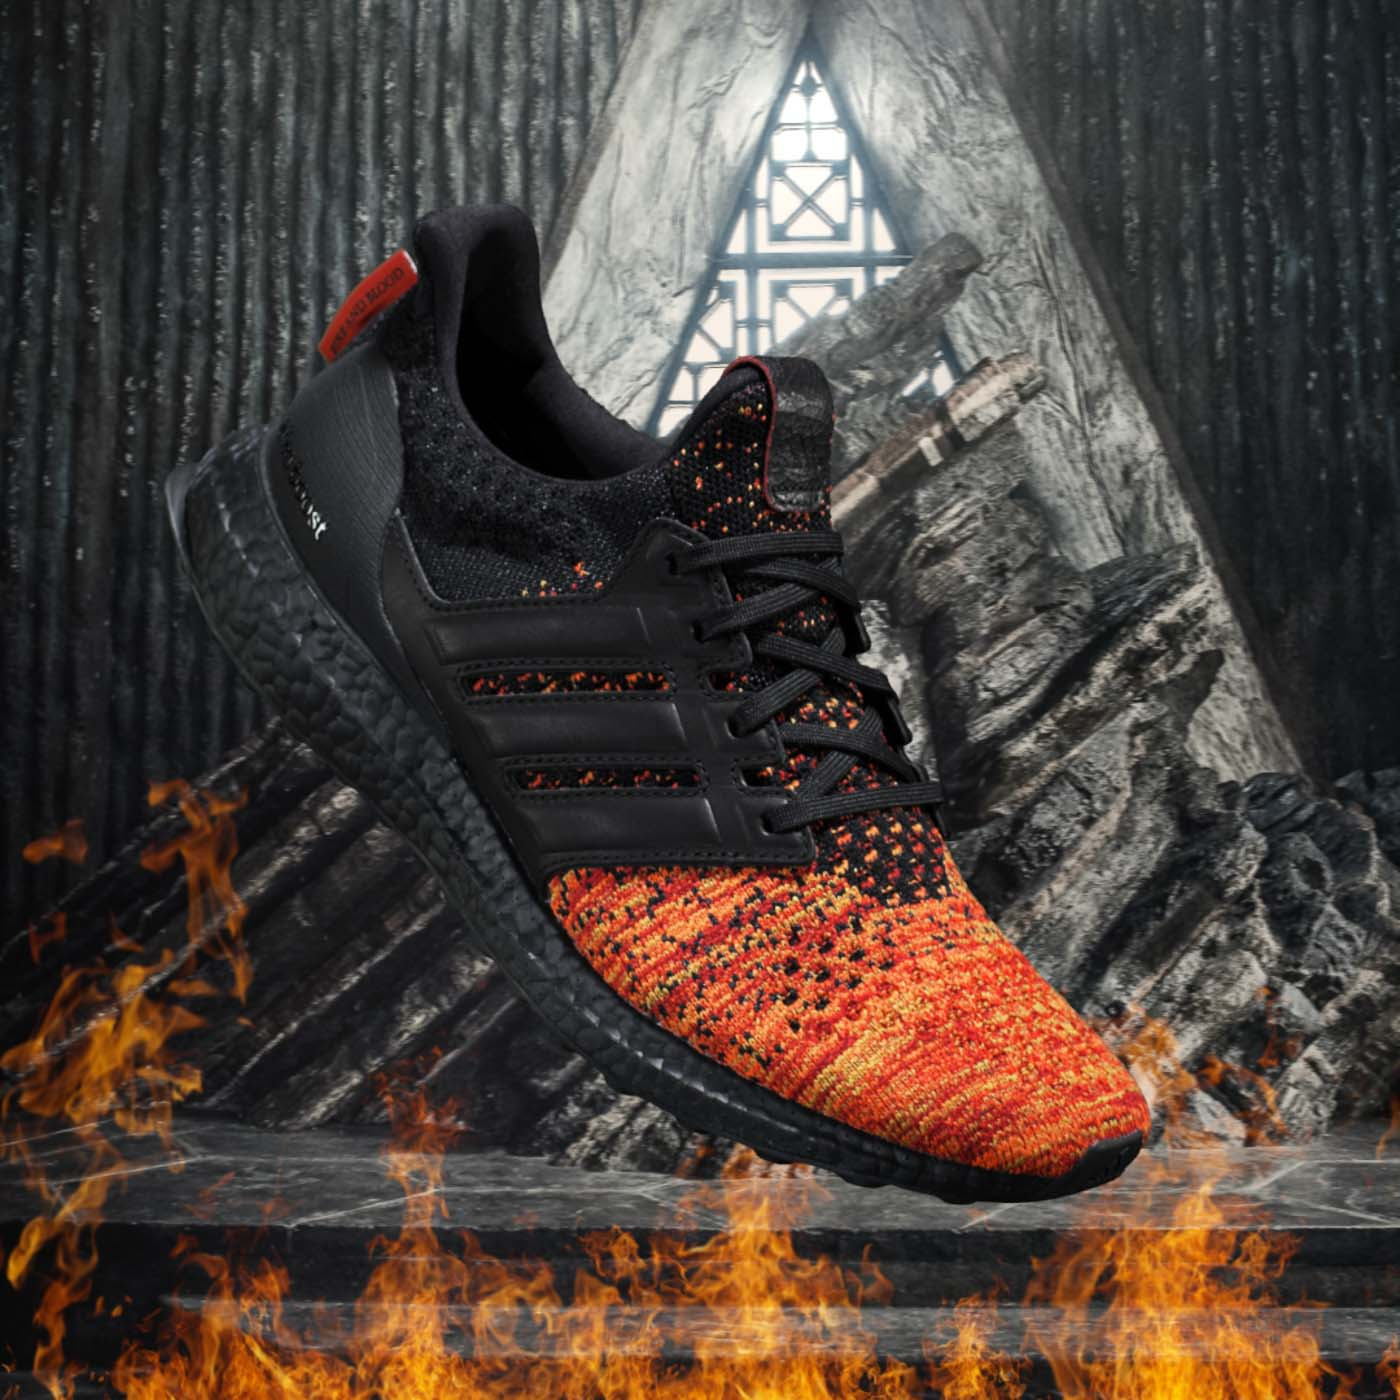 huge discount 49a19 3a991 LOOK  The Adidas x Game of Thrones collab drops March 22